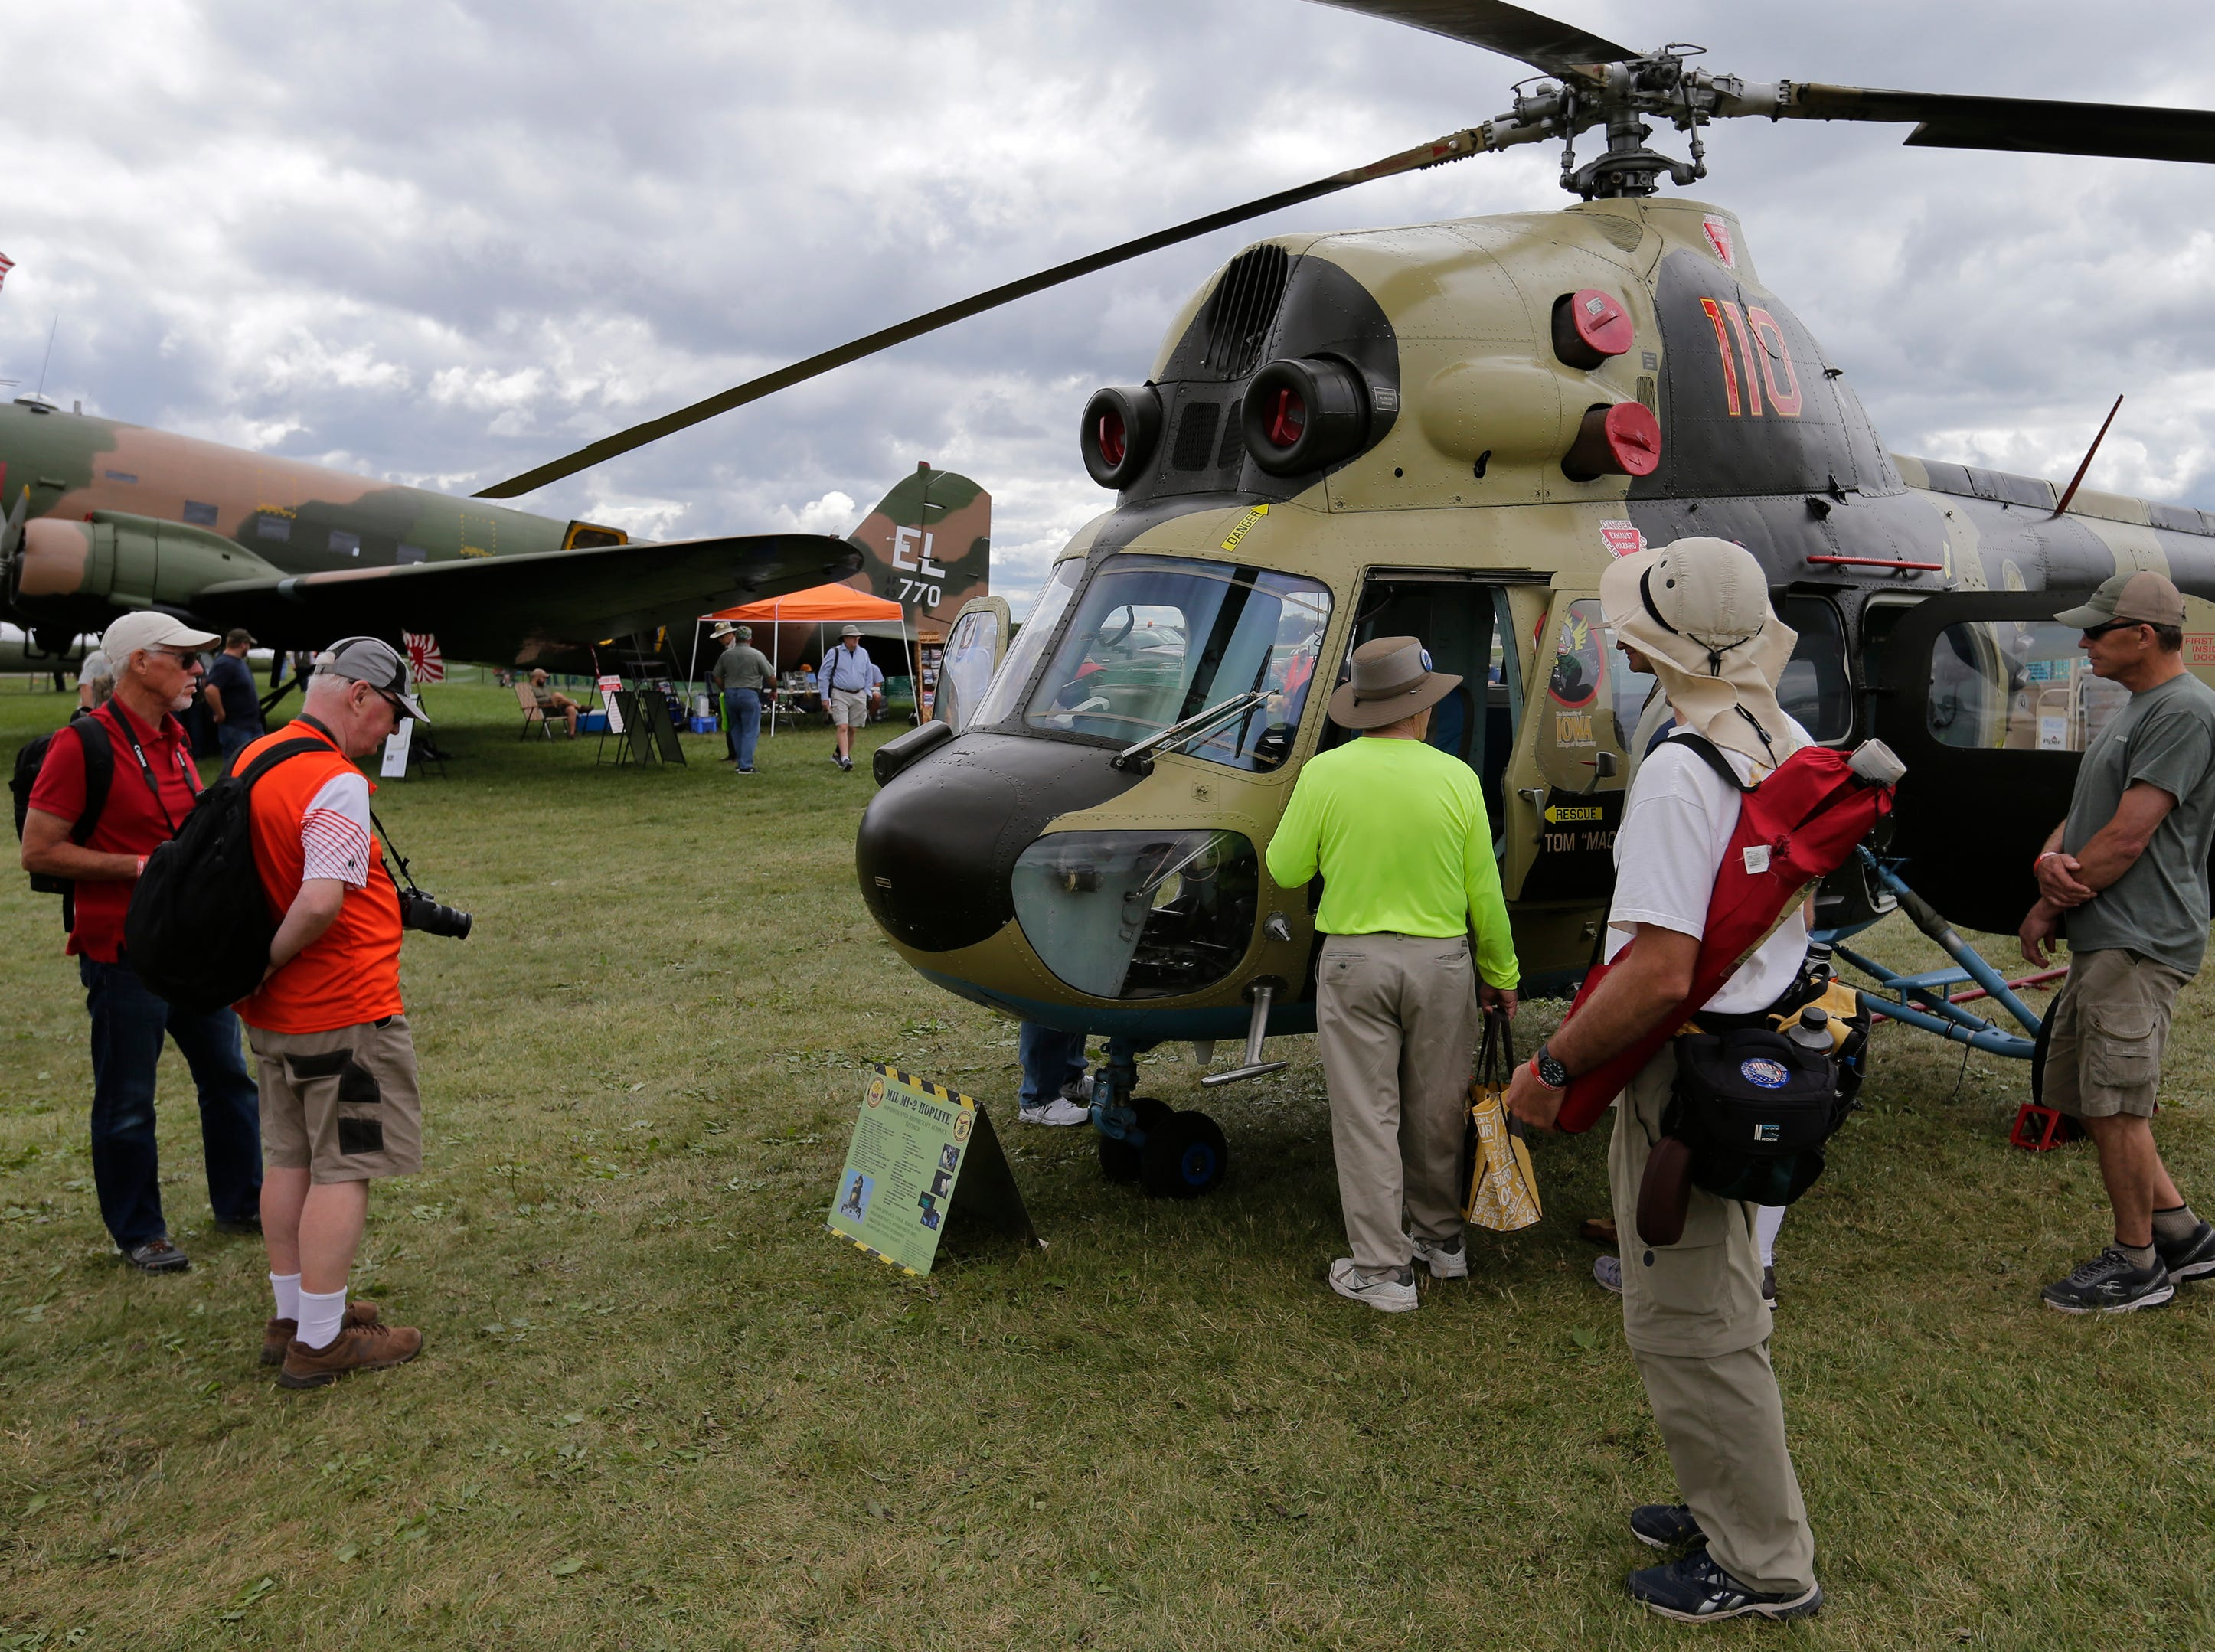 University of Iowa had their MIL-MI-2 Hoplite helicopter on display in the warbird area, Thursday, July 26, 2018, in Oshkosh, Wis.  The 66th annual Experimental Aircraft Association Fly-In Convention, AirVenture 2018 draws over 500,000 people and over 10,000 planes from more than 70 nations annually to the area.  The convention runs through July 29.Joe Sienkiewicz/USA Today NETWORK-Wisconsin